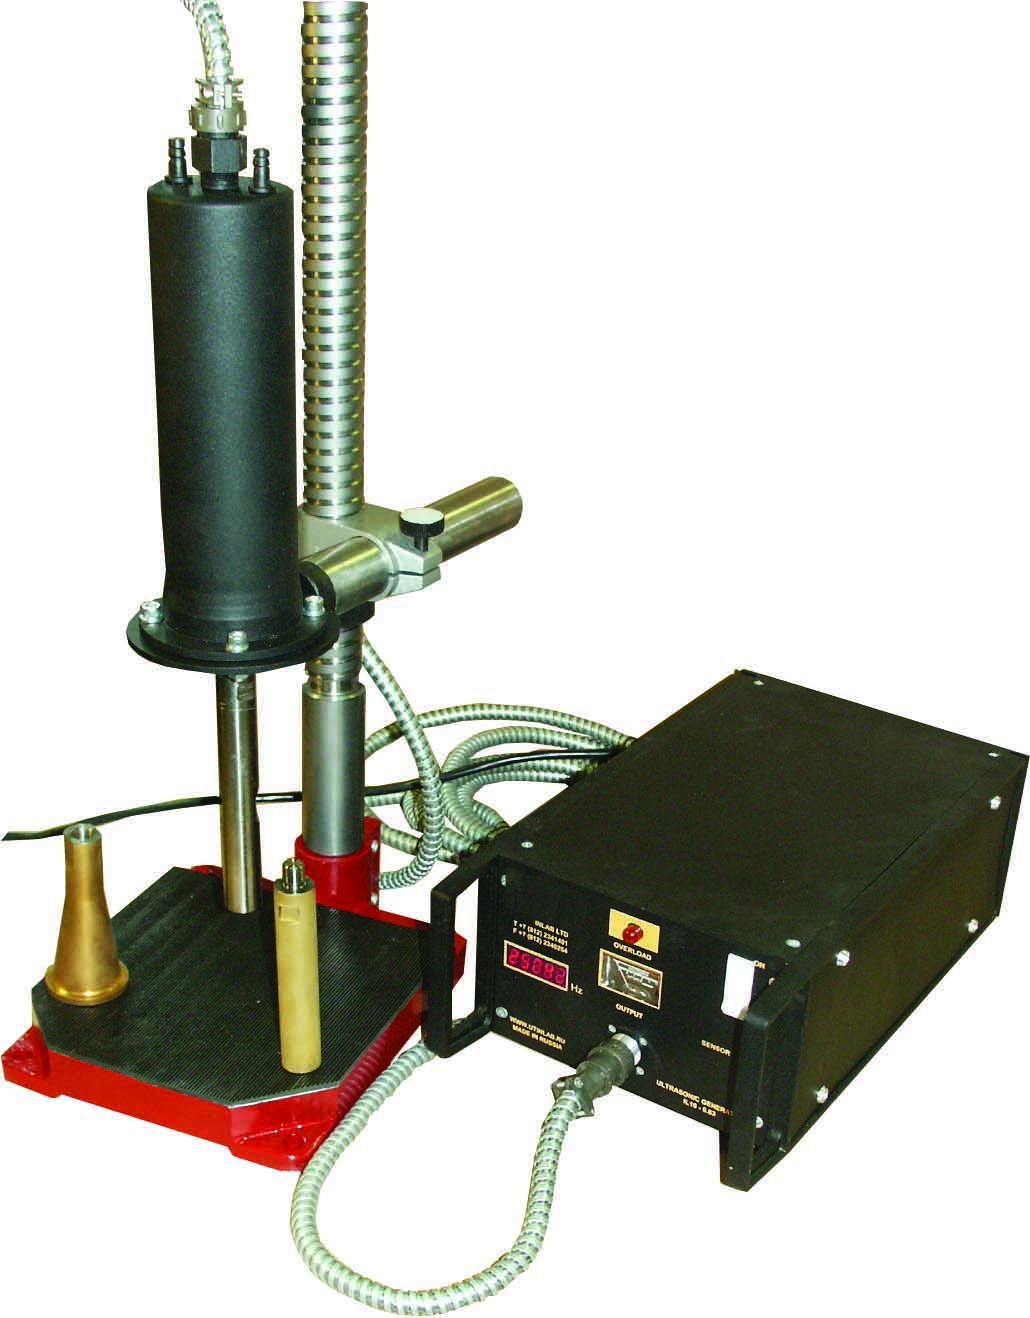 Universal ultrasonic unit